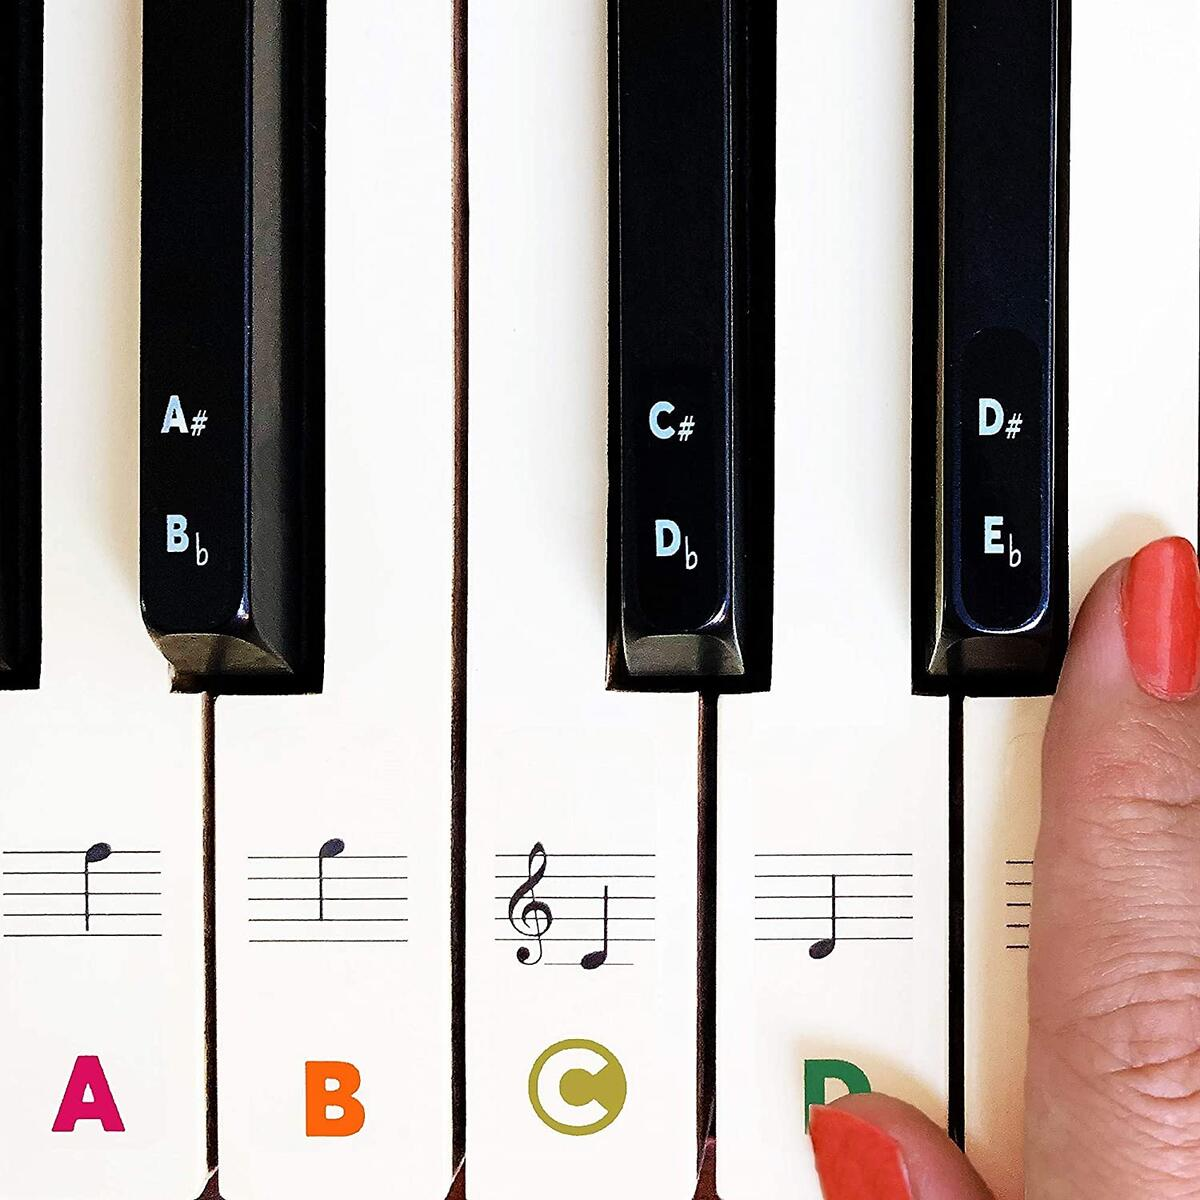 Piano Keyboard Stickers for Beginners 88/76/61/54/49/37 Keys. Removable, Transparent, Multi-Colored Piano Stickers. Perfect for Kids, Big Bold Letters, Easy to Install - with Cleanning Cloth